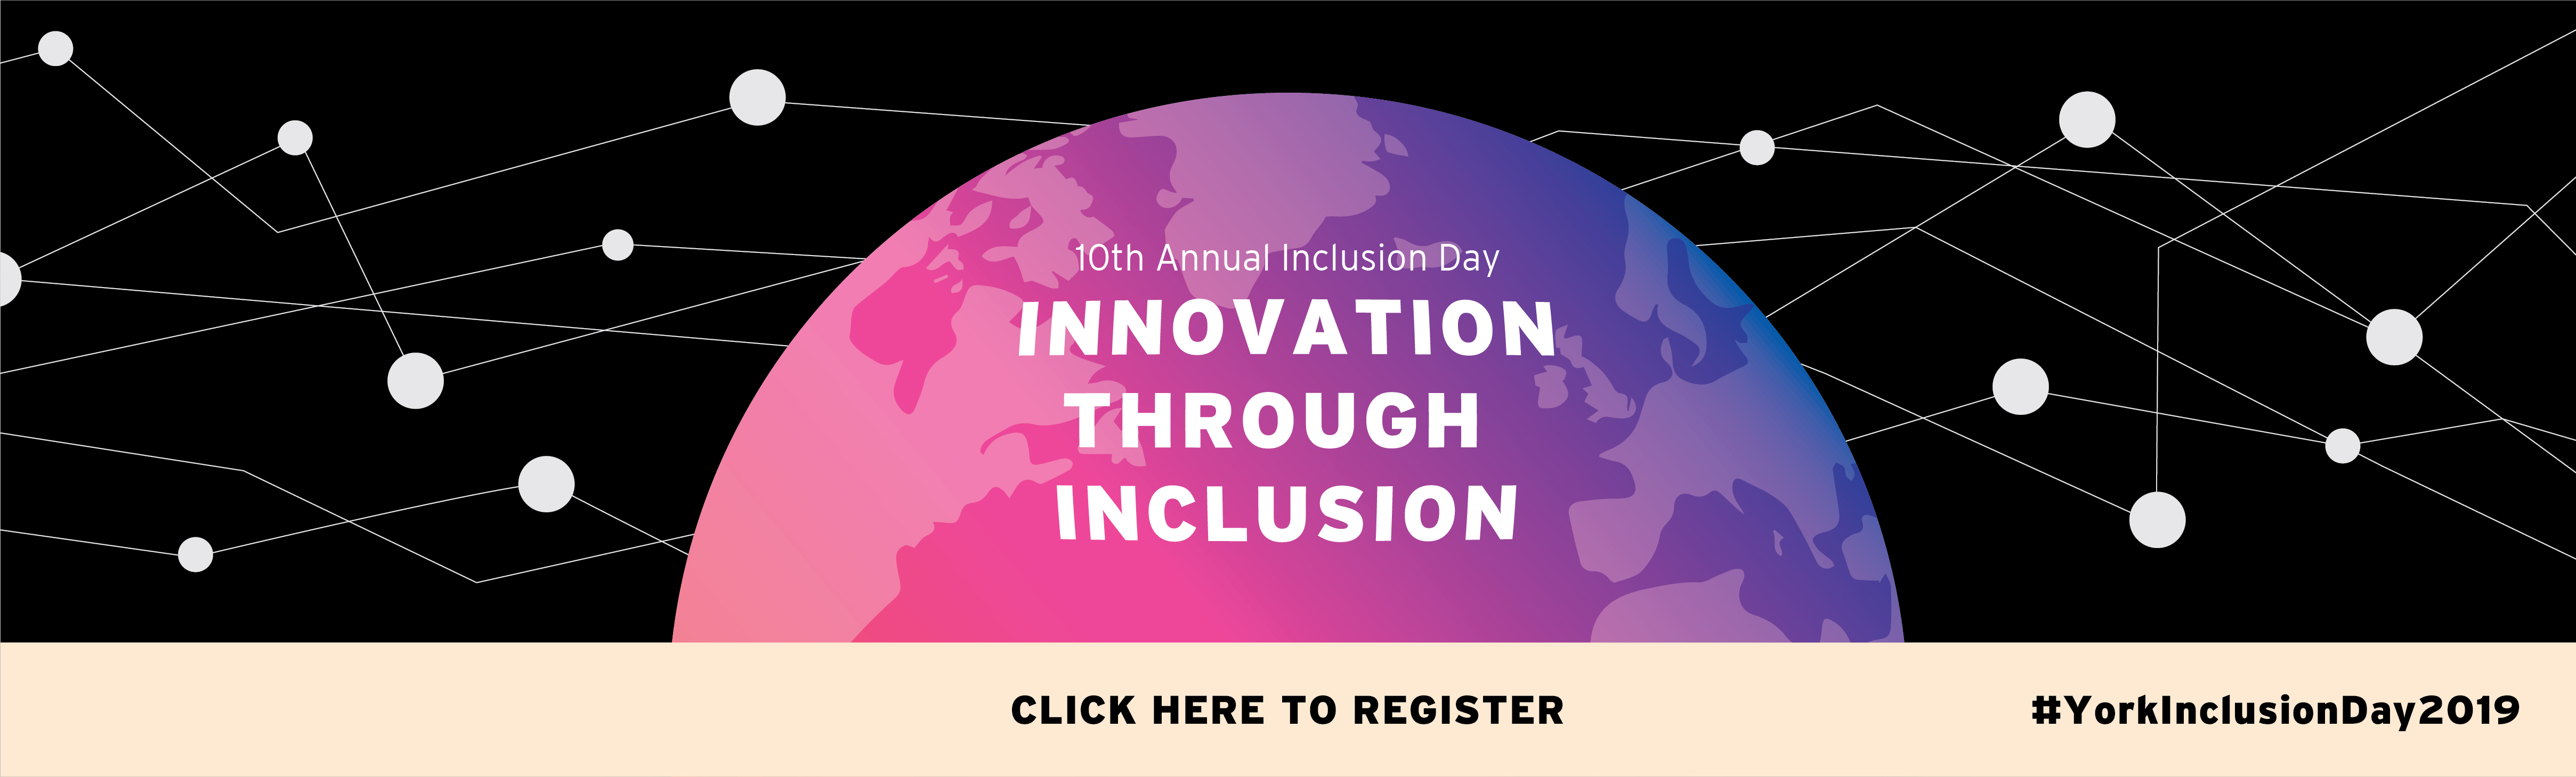 Inclusion Day 2019: Innovation through Inclusion